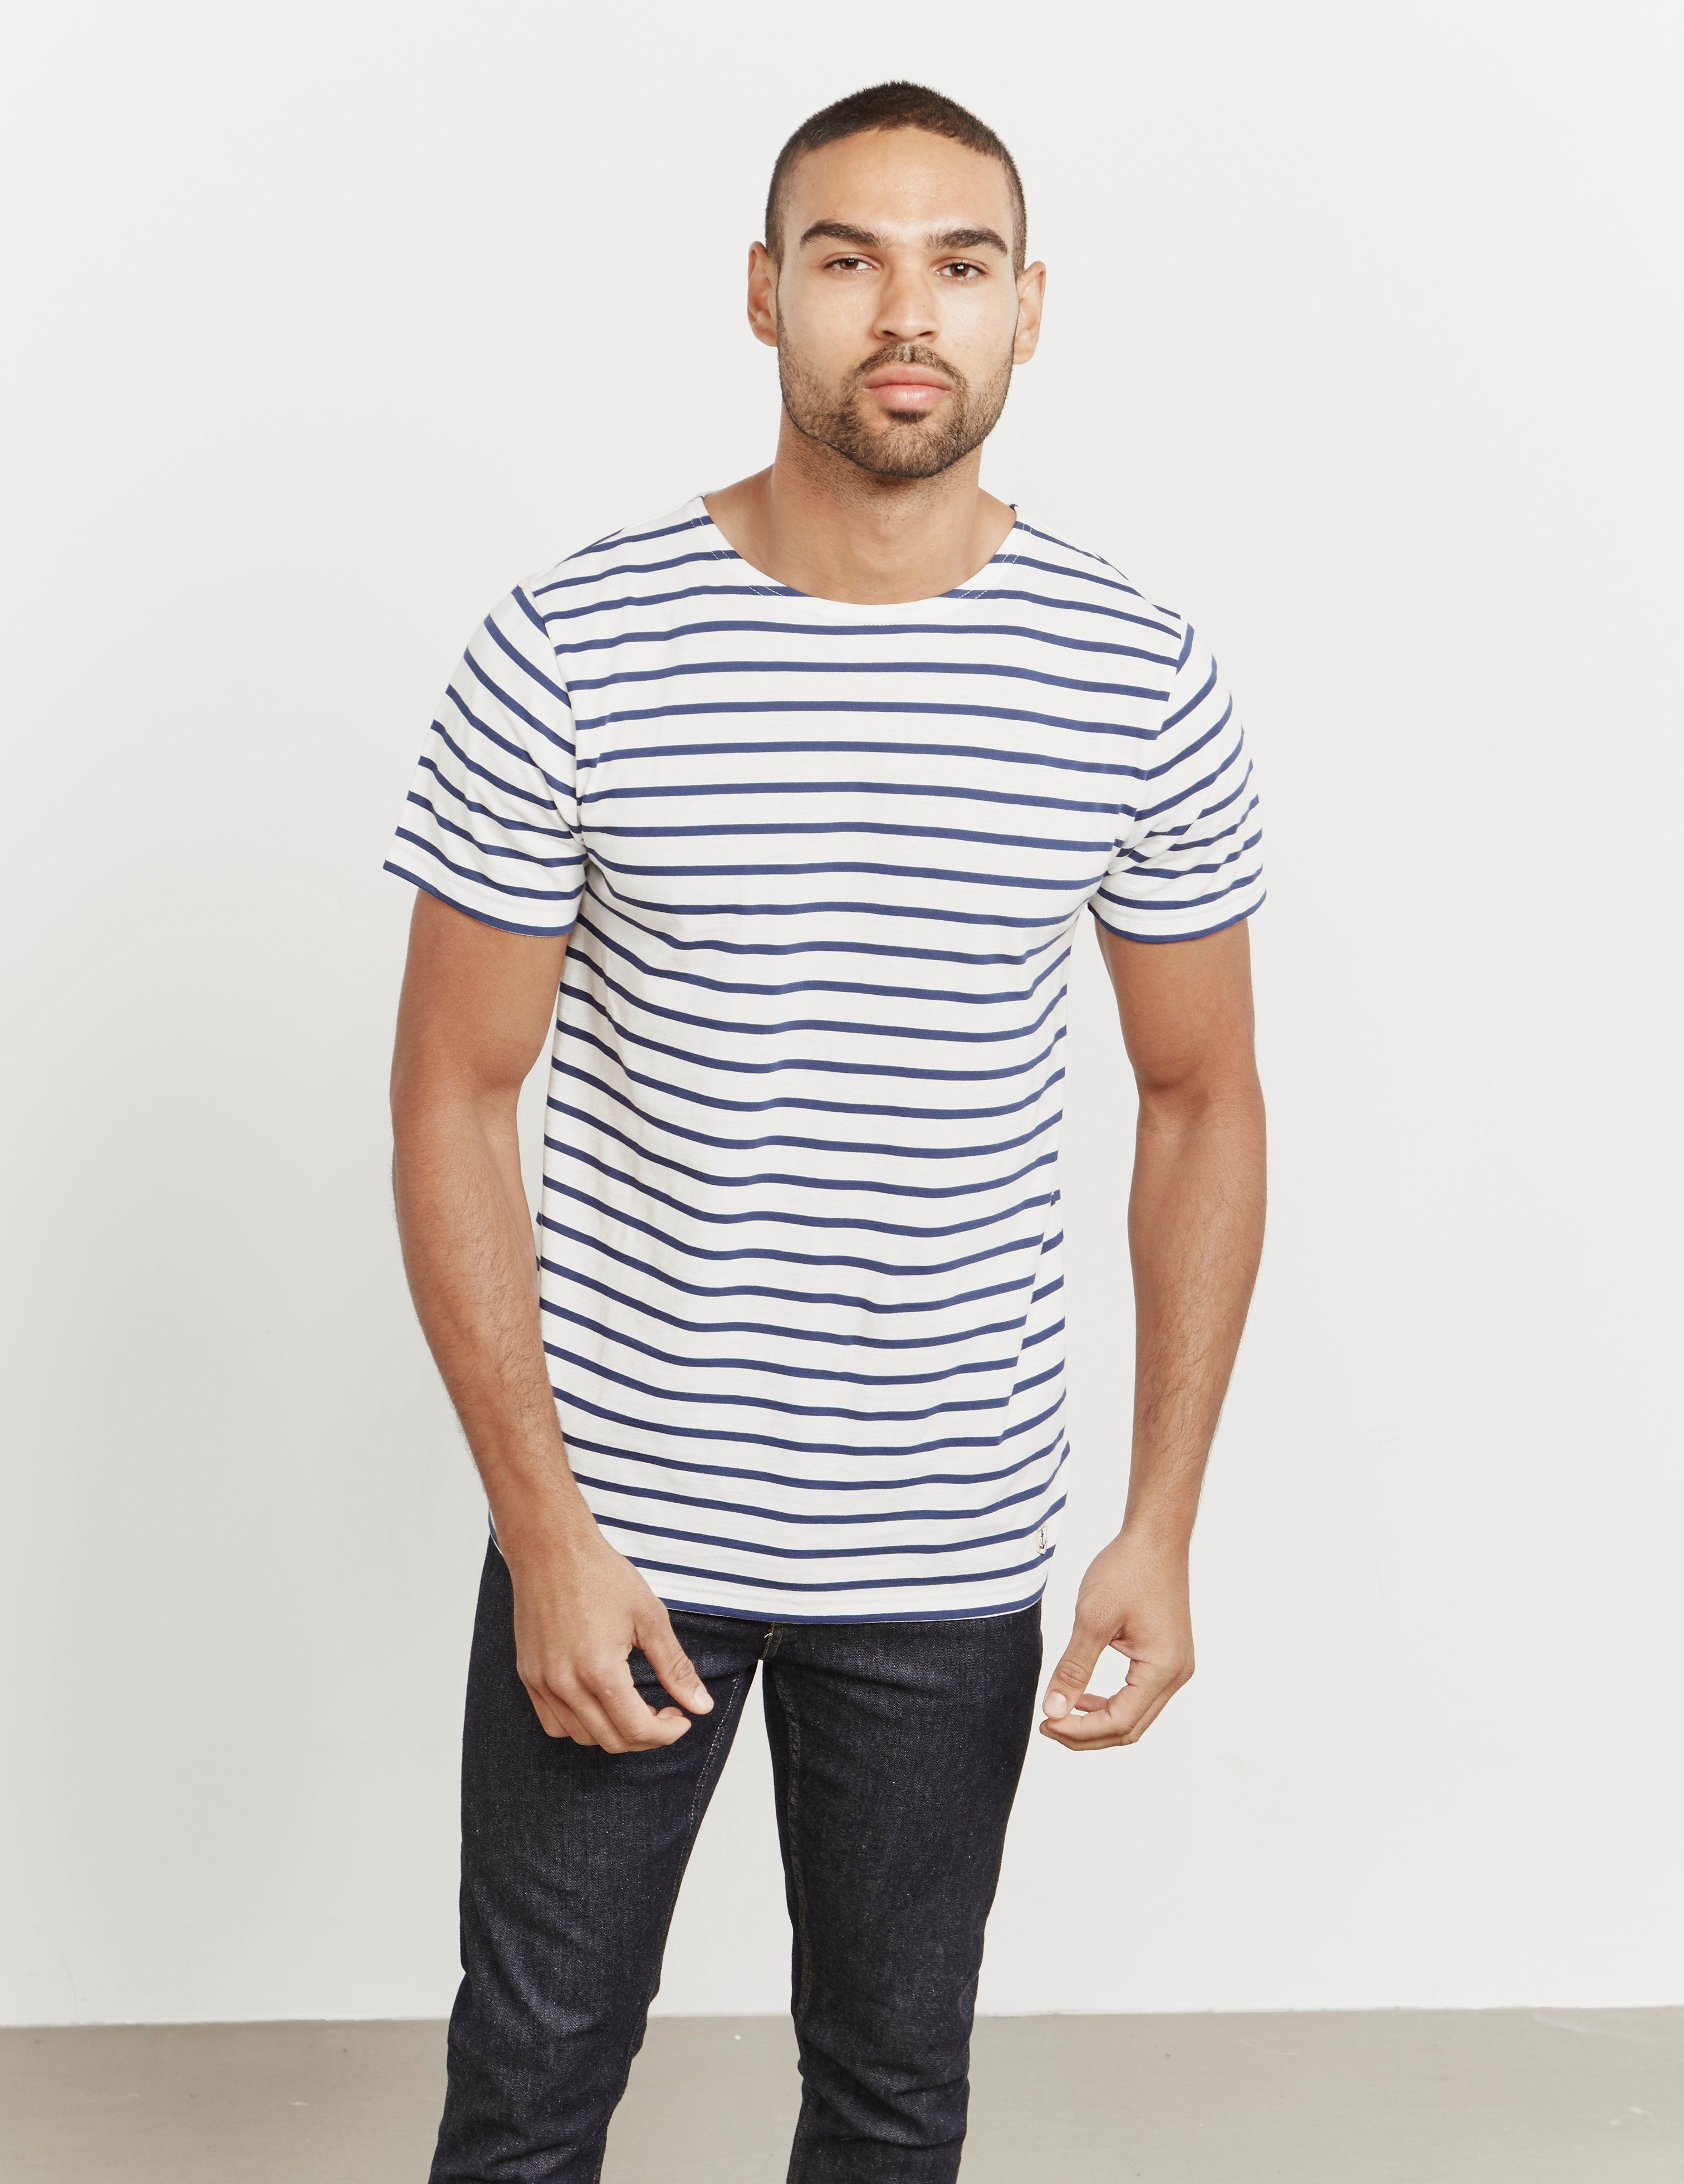 Armor Lux Sailor Short Sleeve T-Shirt